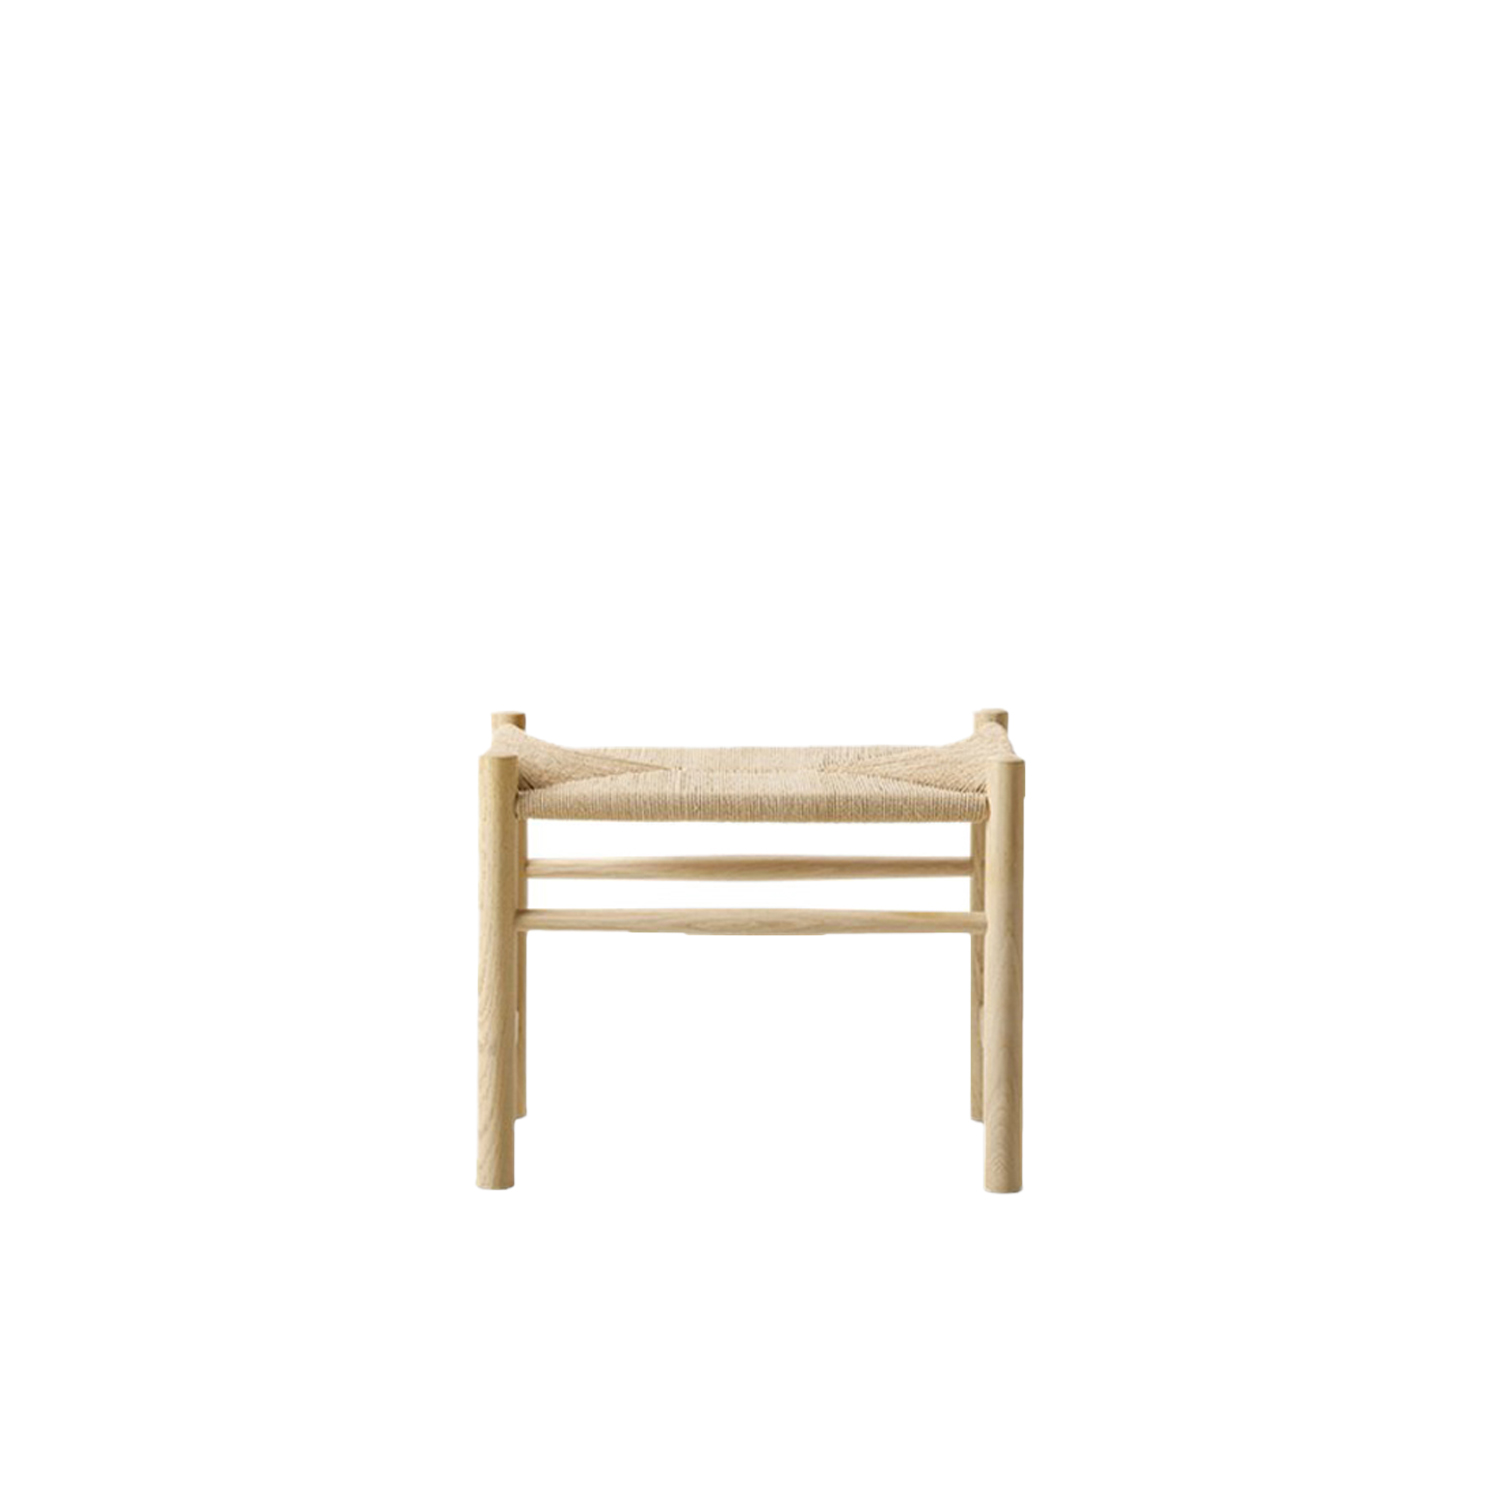 Wegner J16 Stool - Wegner's simple corded seat stool is an example of the Danish tradition of designing modern furniture using sticks and dowels. It can be used as a footstool as well as a standalone seat. | Matter of Stuff